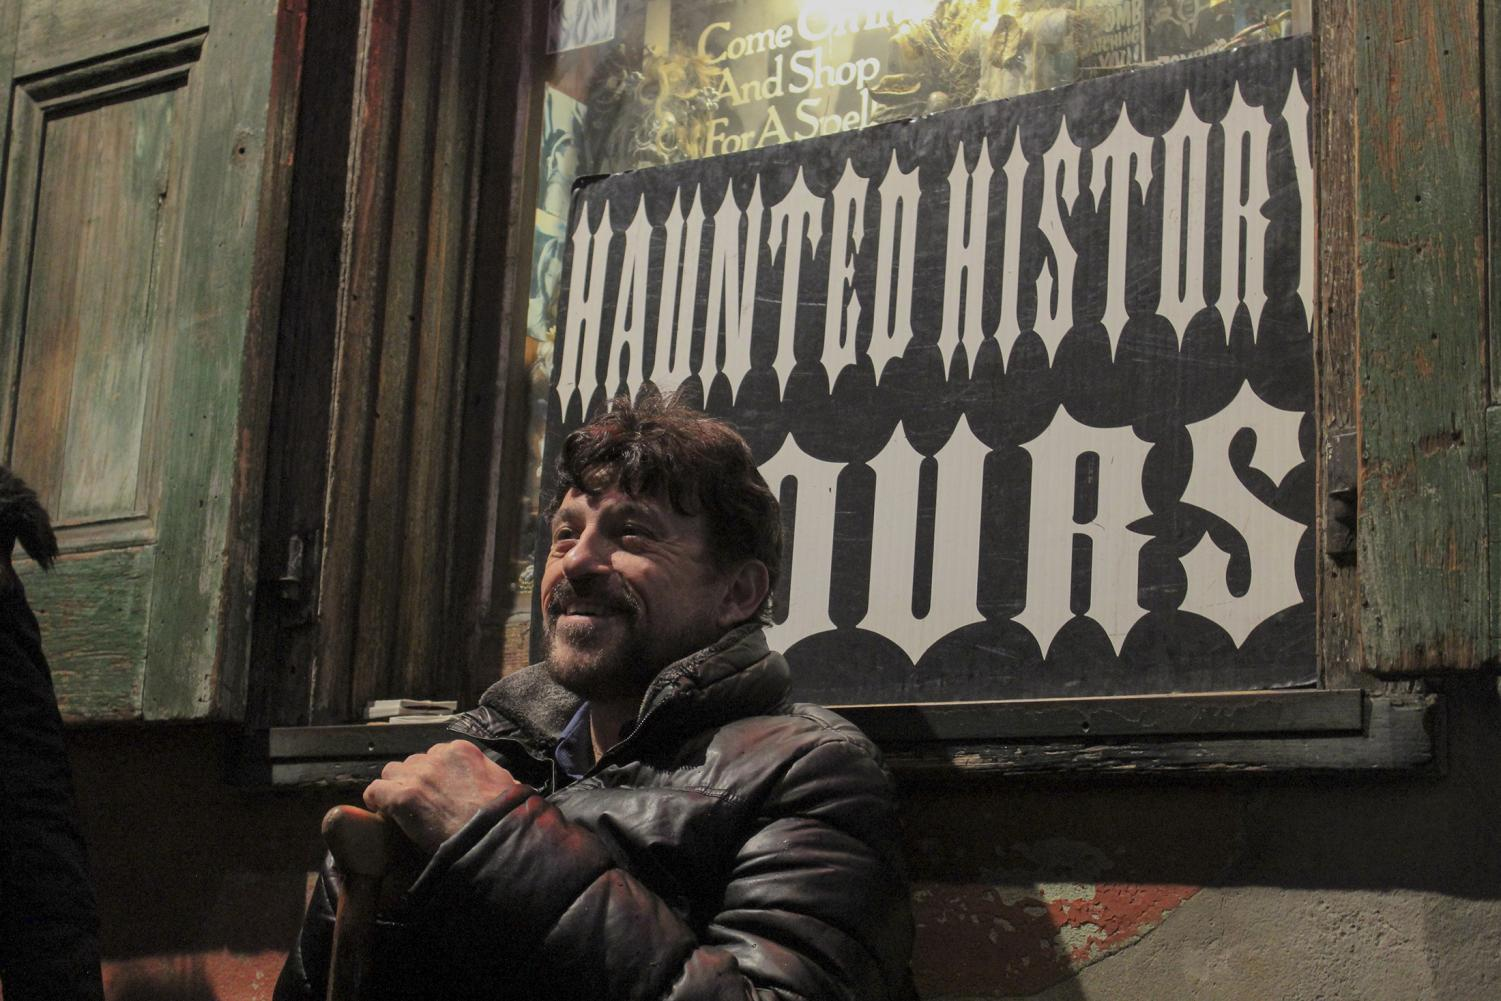 Sidney Smith, owner of Haunted History Tours, waits outside of Rev. Zombie's House of Voodoo shop for the ghost tour to begin. Haunted History Tours has been delivering gruesome tales and showcasing haunted sites throughout the French Quarter since 1995. Photo credit: Andres Fuentes